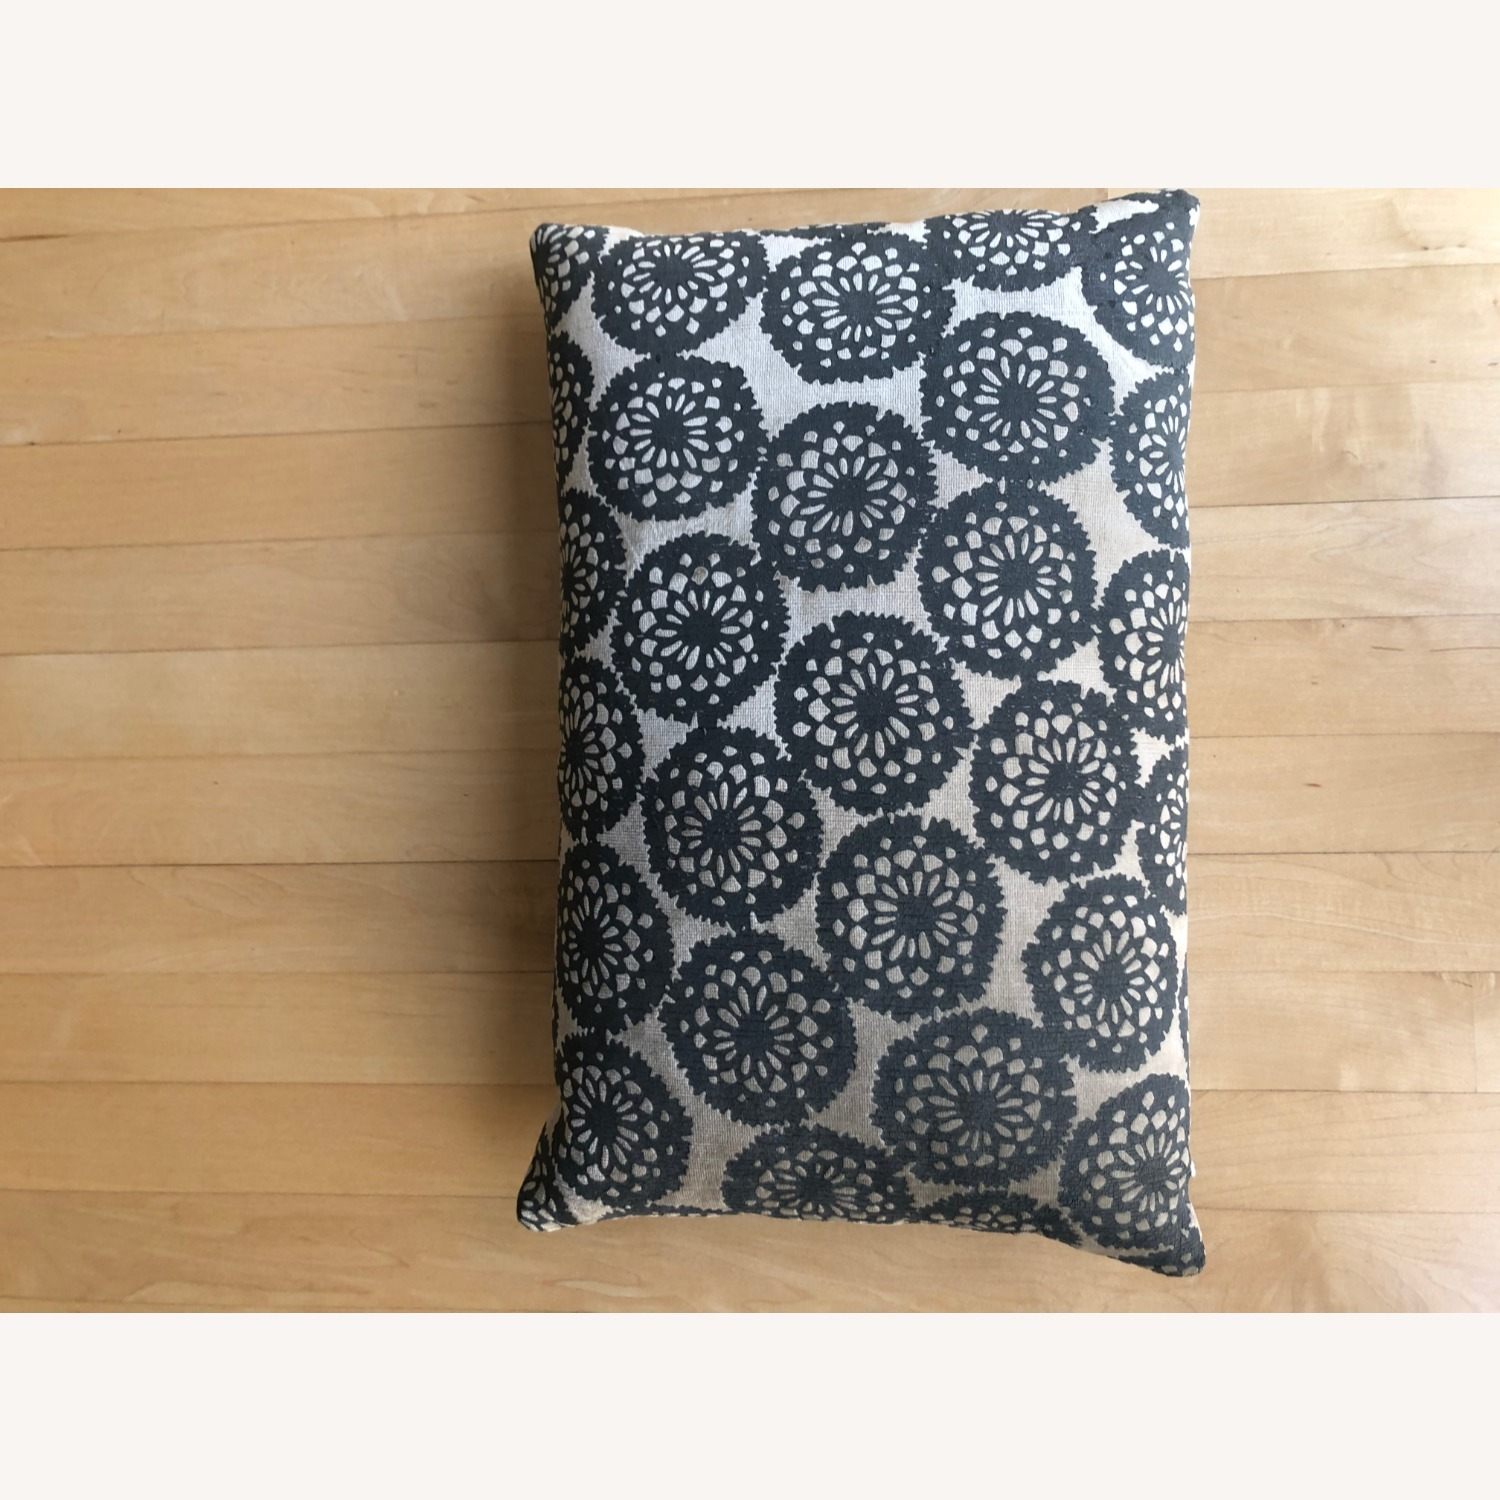 Room & Board Decorative Pillow - image-2